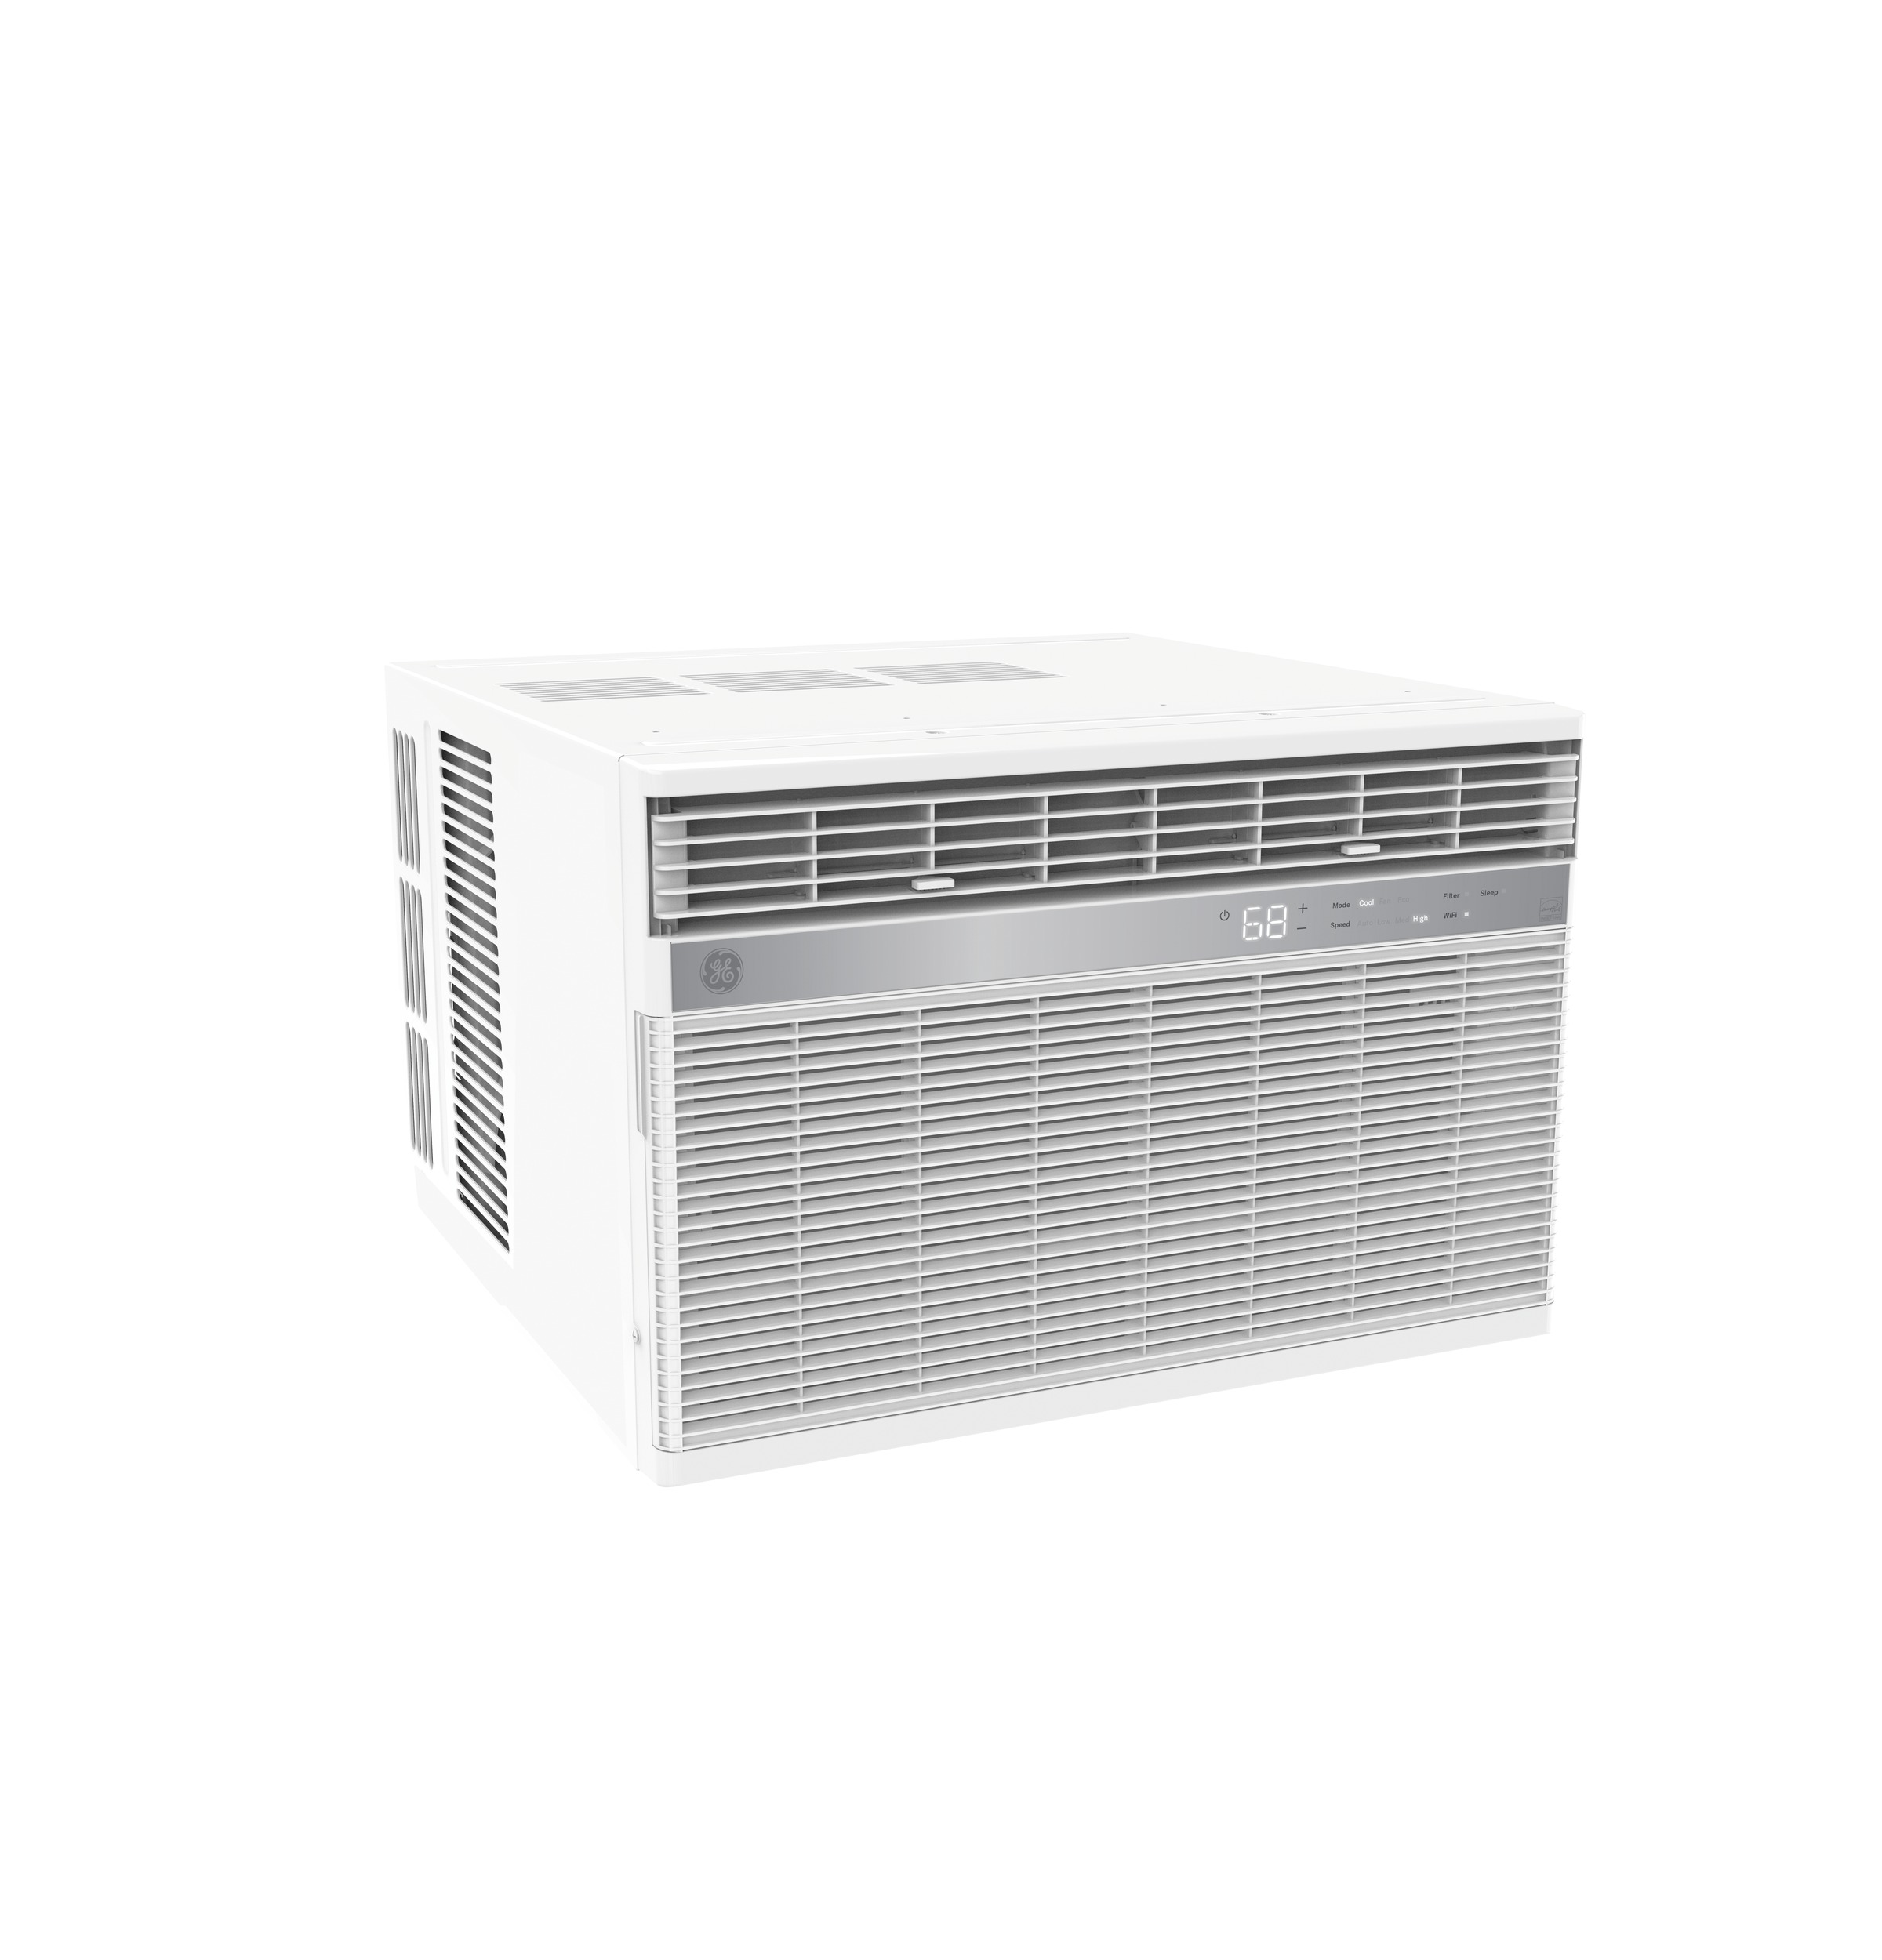 Model: AHY18DZ | GE GE® 230 Volt Smart Room Air Conditioner